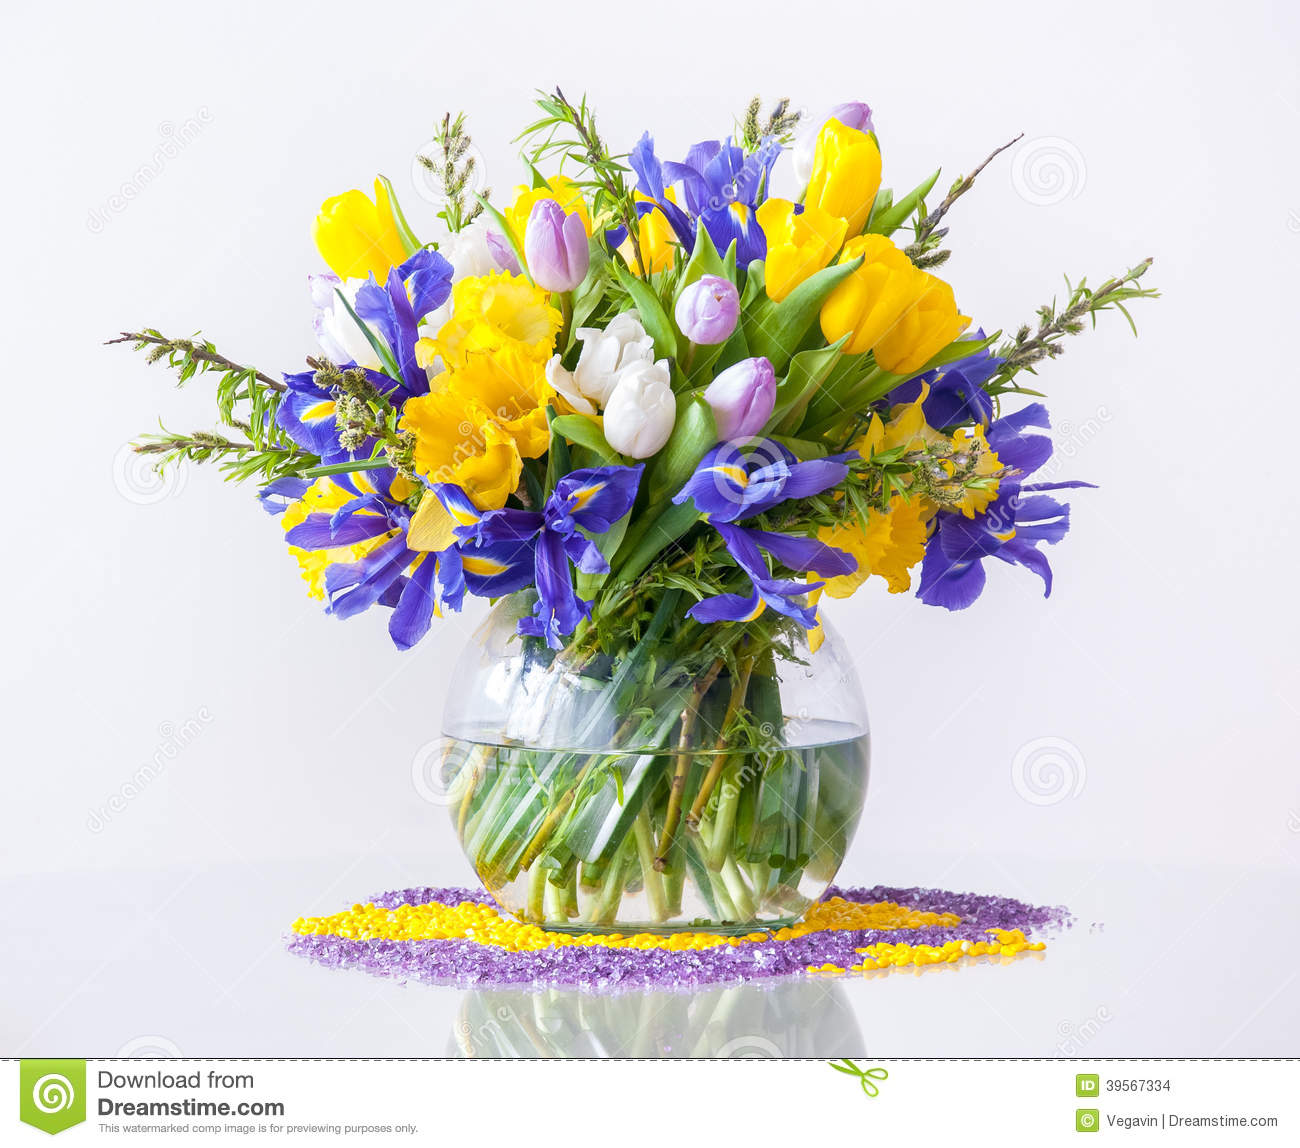 Bouquet of spring flowers stock photo image of easter 39567334 bouquet of spring flowers izmirmasajfo Choice Image